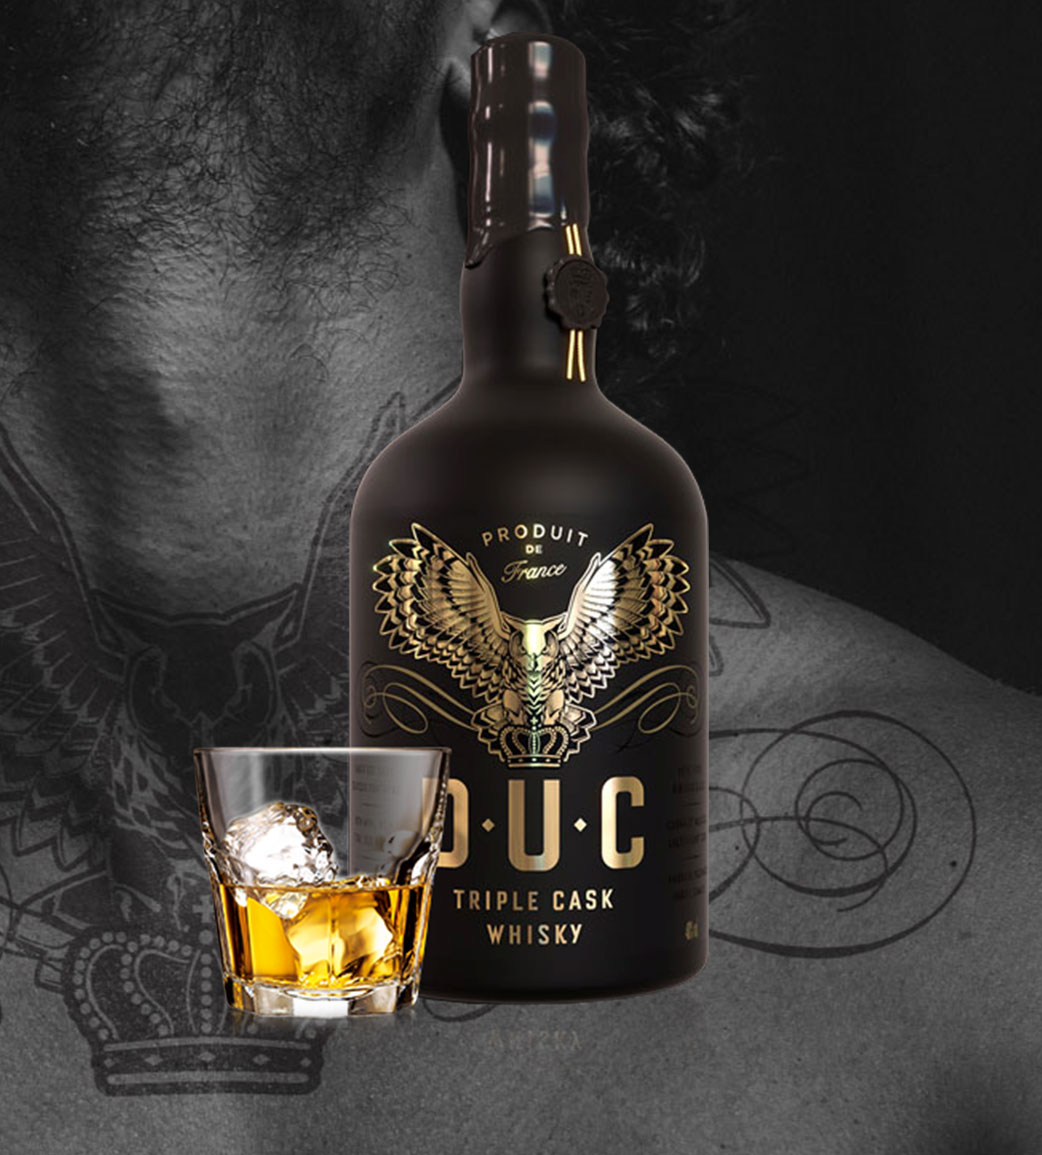 D.U.C Whisky Website   The Brand Collective